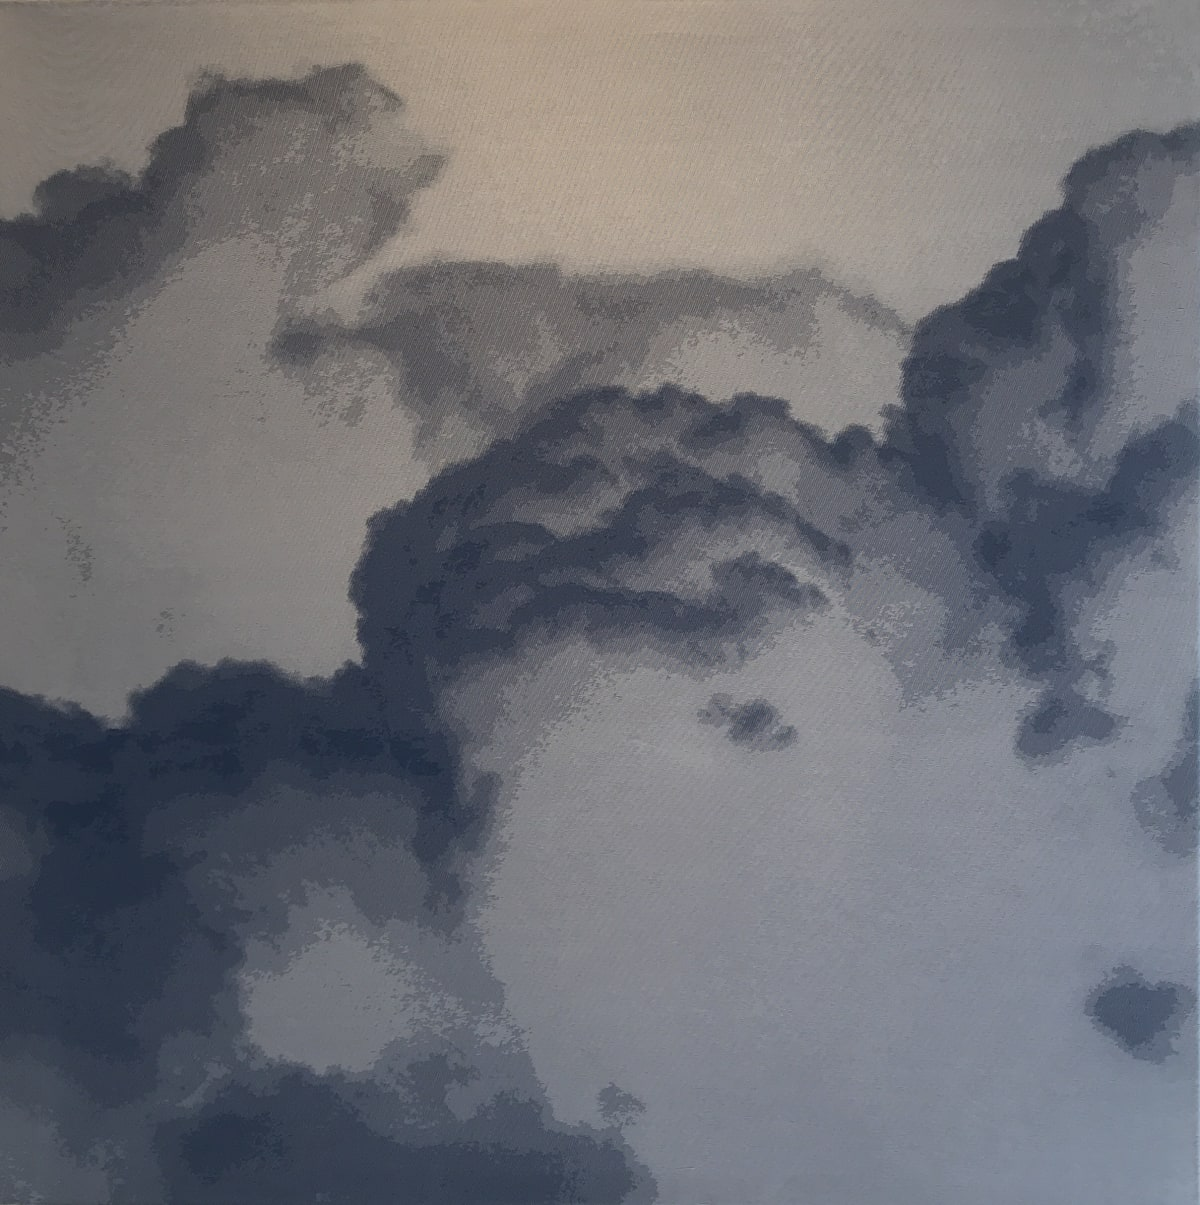 SONJA WEBER Sky Moments 852, 2007 Jacquard fabric 120 x 120 cm 47 1/2 x 47 1/2 in Signed and dated